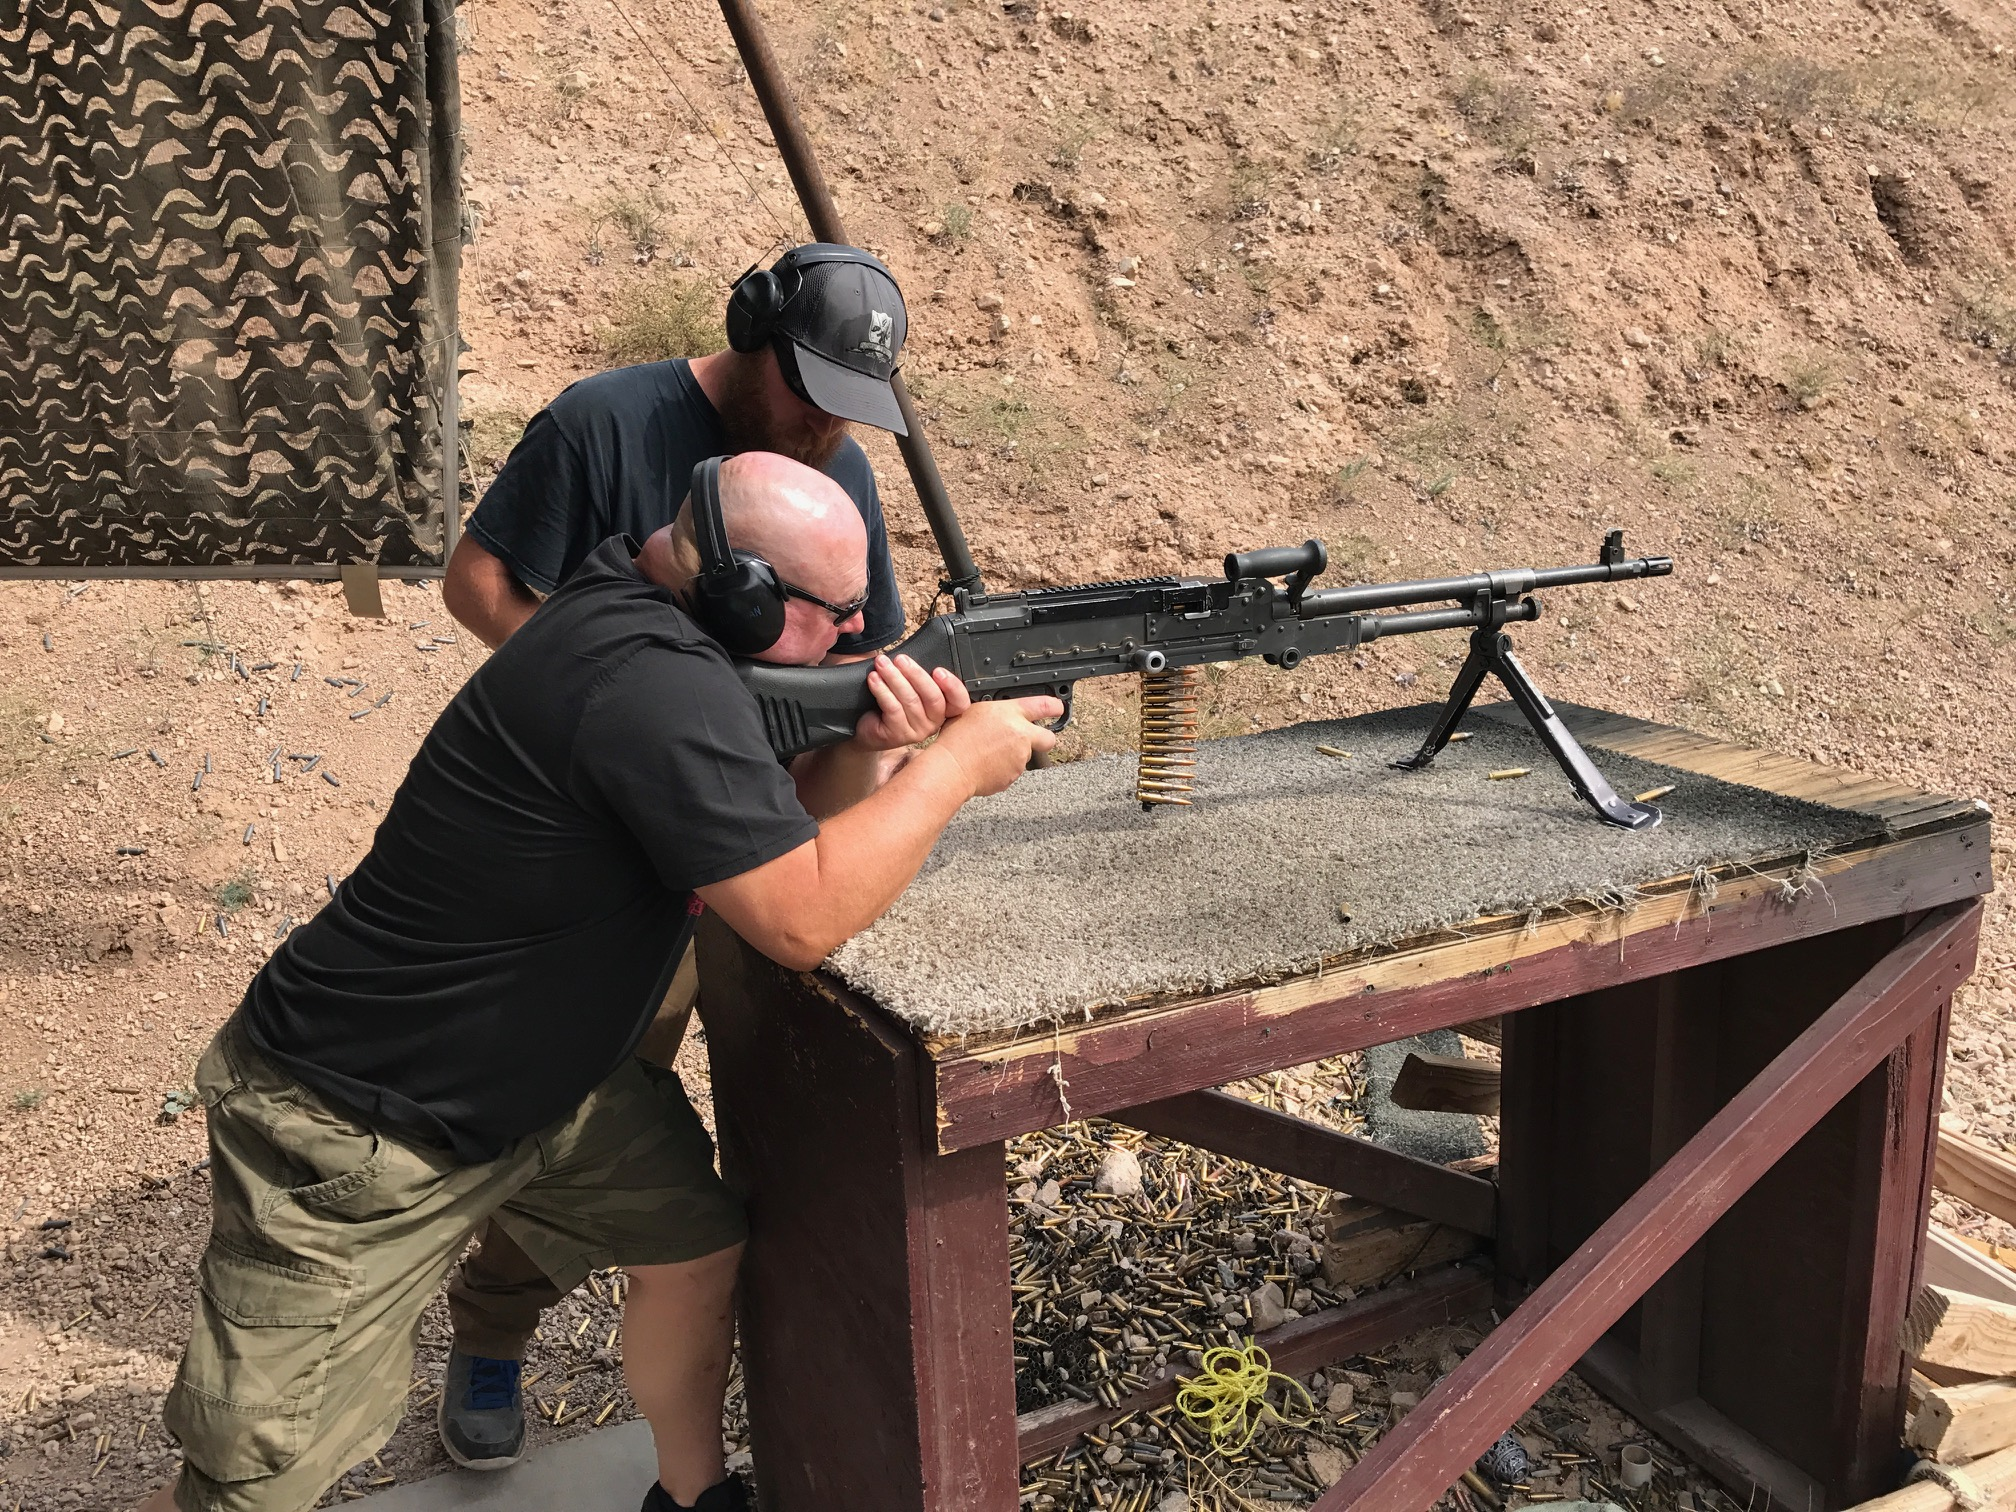 Full Auto Machine Guns Las Vegas